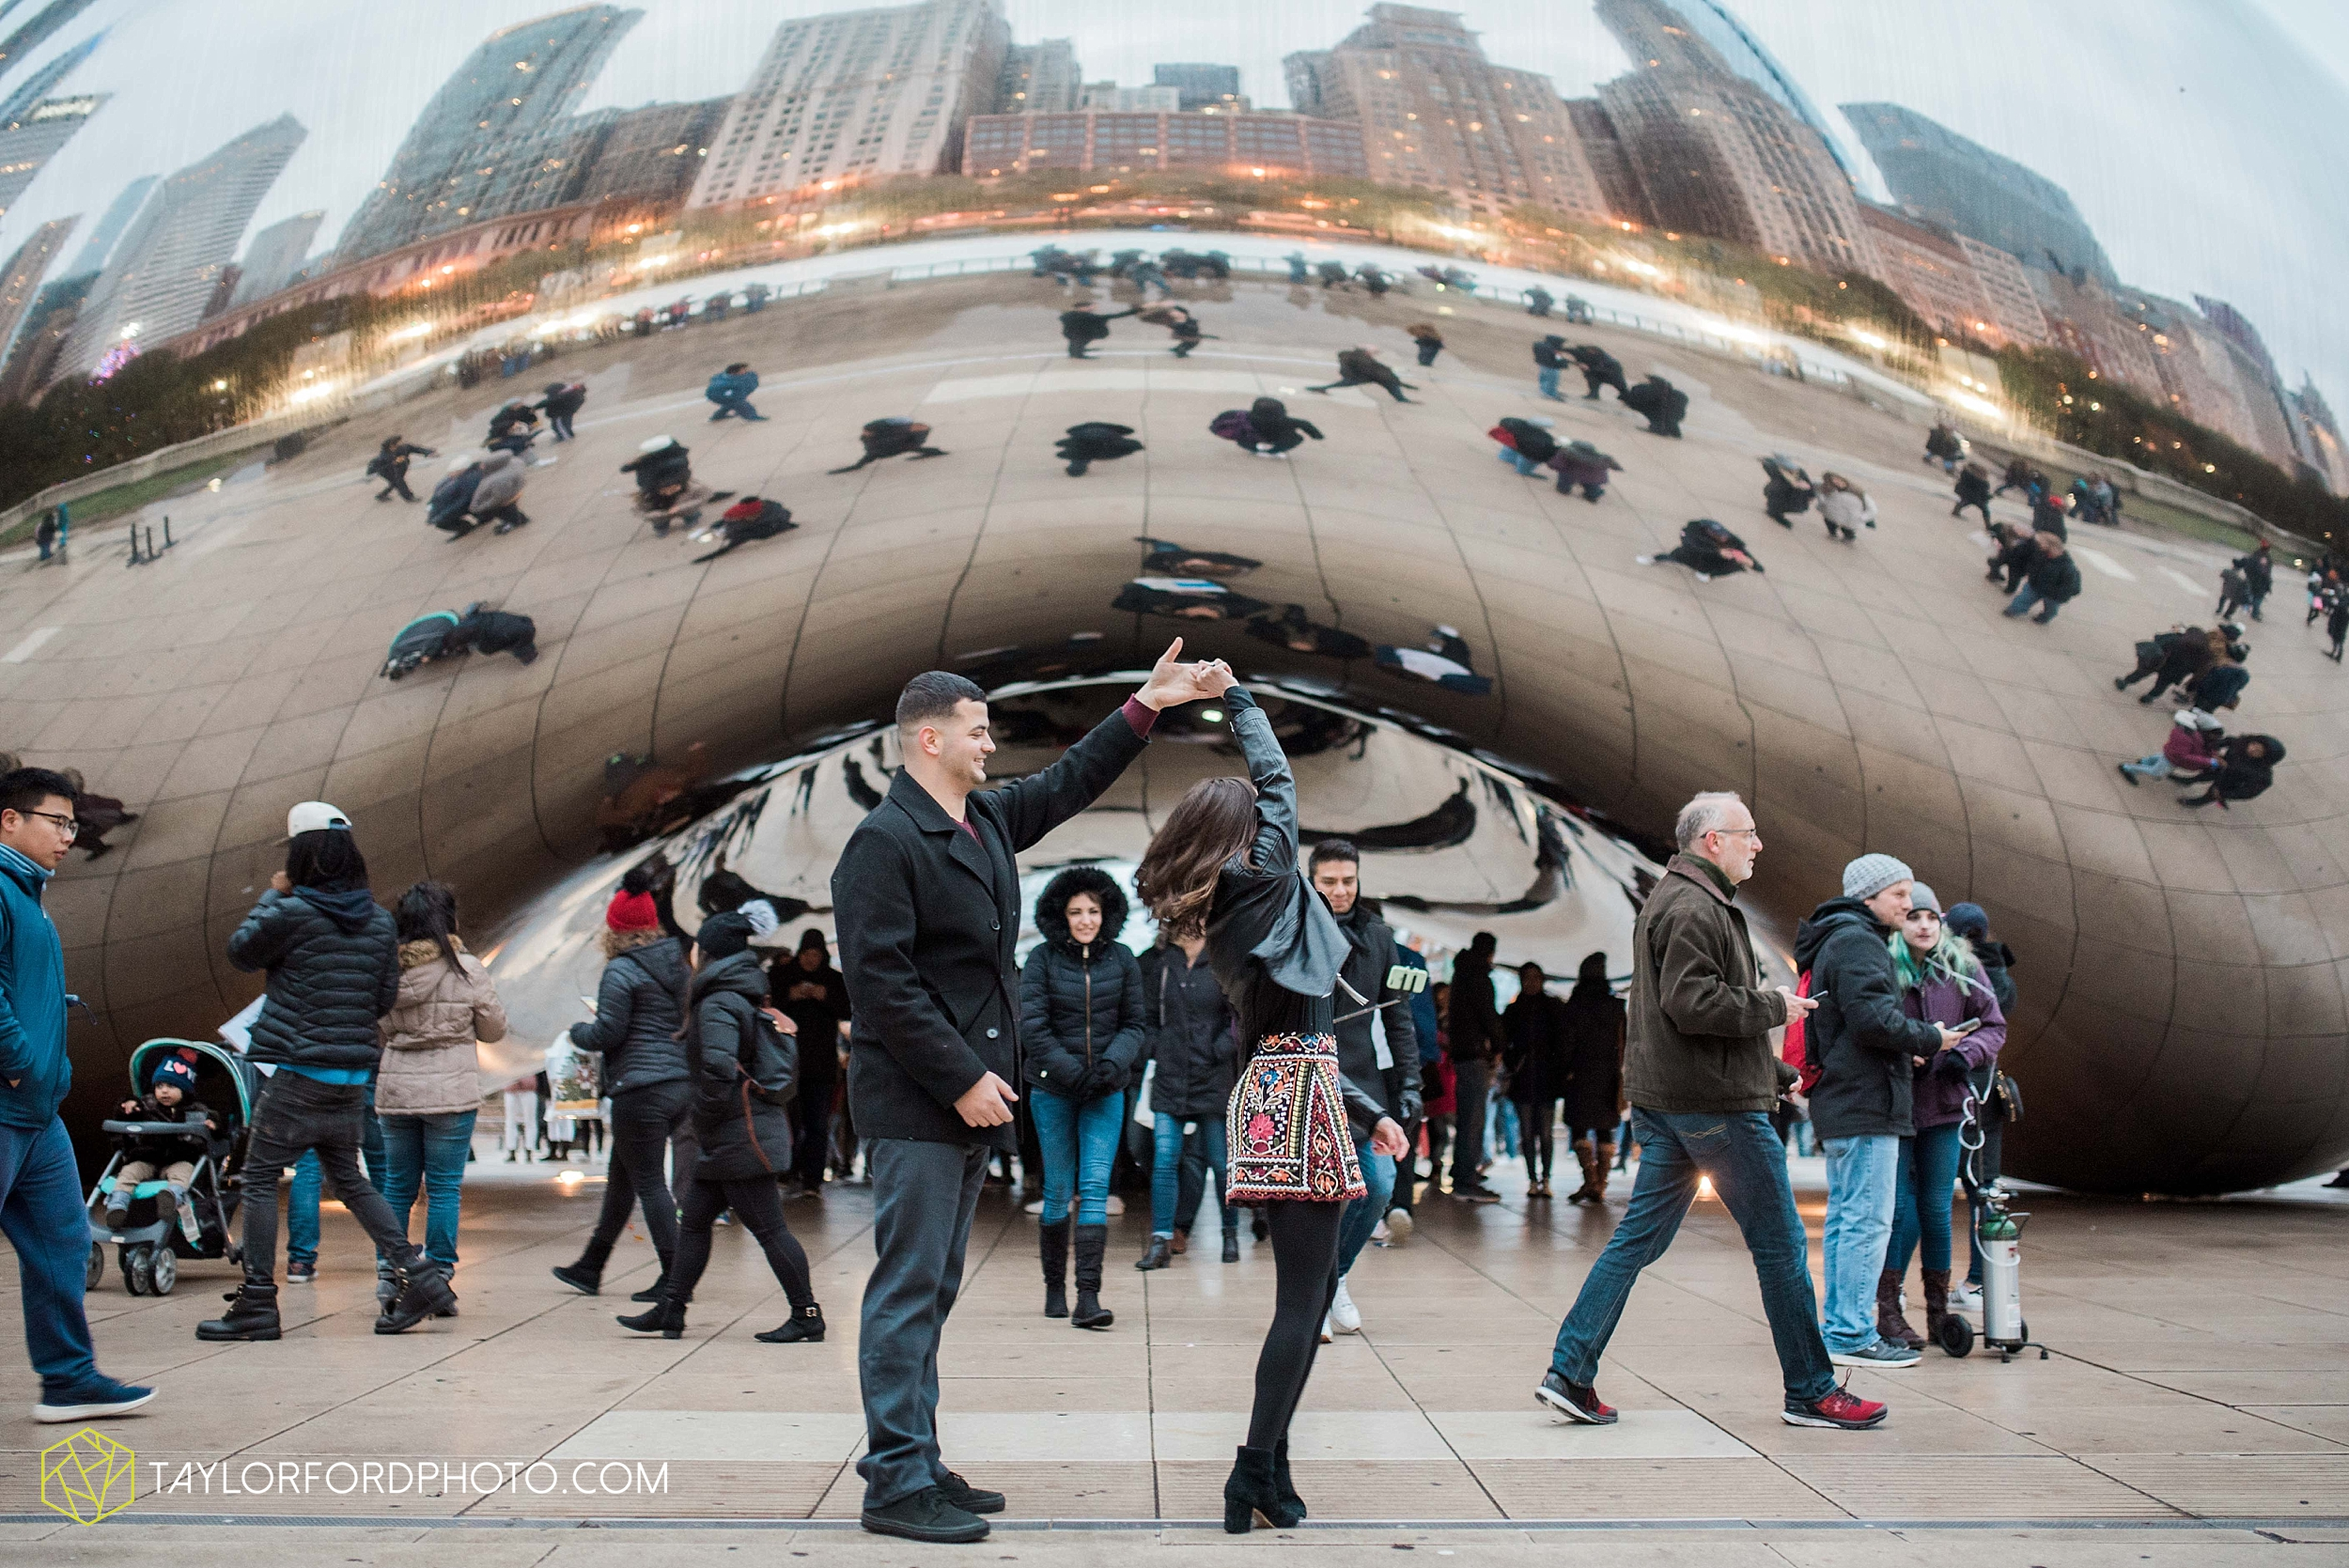 chicago-illinois-engagement-lincoln-park-zoo-downtown-millenium-park-cloud-gate-photographer-Taylor-Ford-Photography_6058.jpg